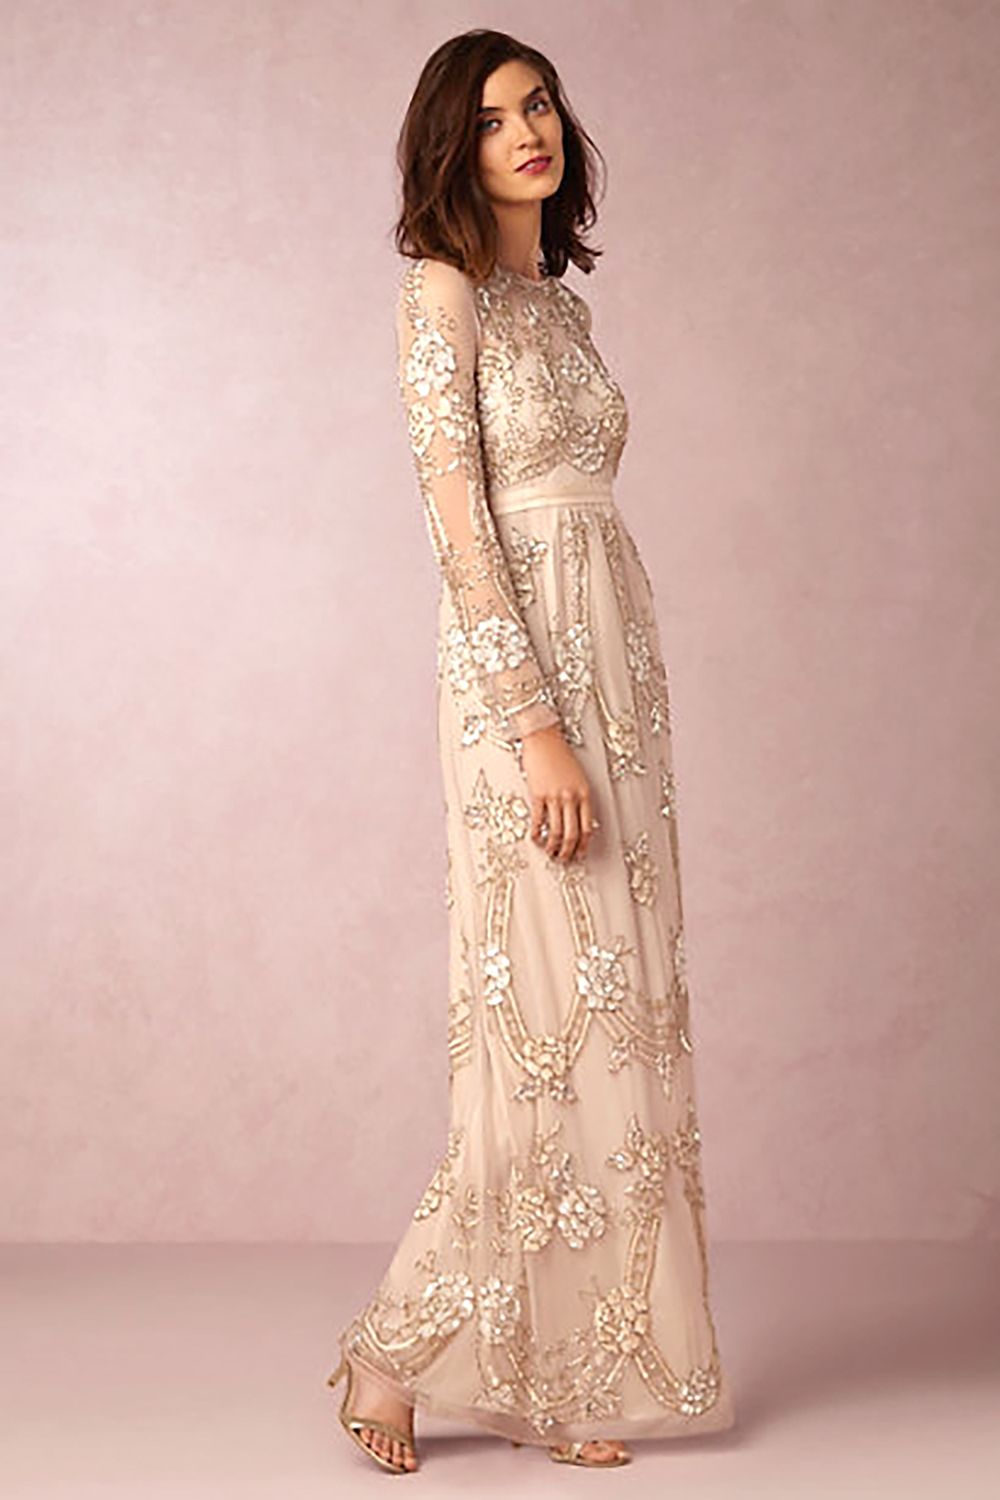 """<p>This vintage-inspired number is rose-hued and *gorgeous* on, with its high neck and bead work.</p><p>Adona Dress, $570; <a href=""""http://www.bhldn.com/shop-the-bride-wedding-dresses/adona-dress/productOptionIDS/fbcaeb8b-b90b-4e9a-9313-32da085940dd """" target=""""_blank"""">bhldn.com</a></p>"""